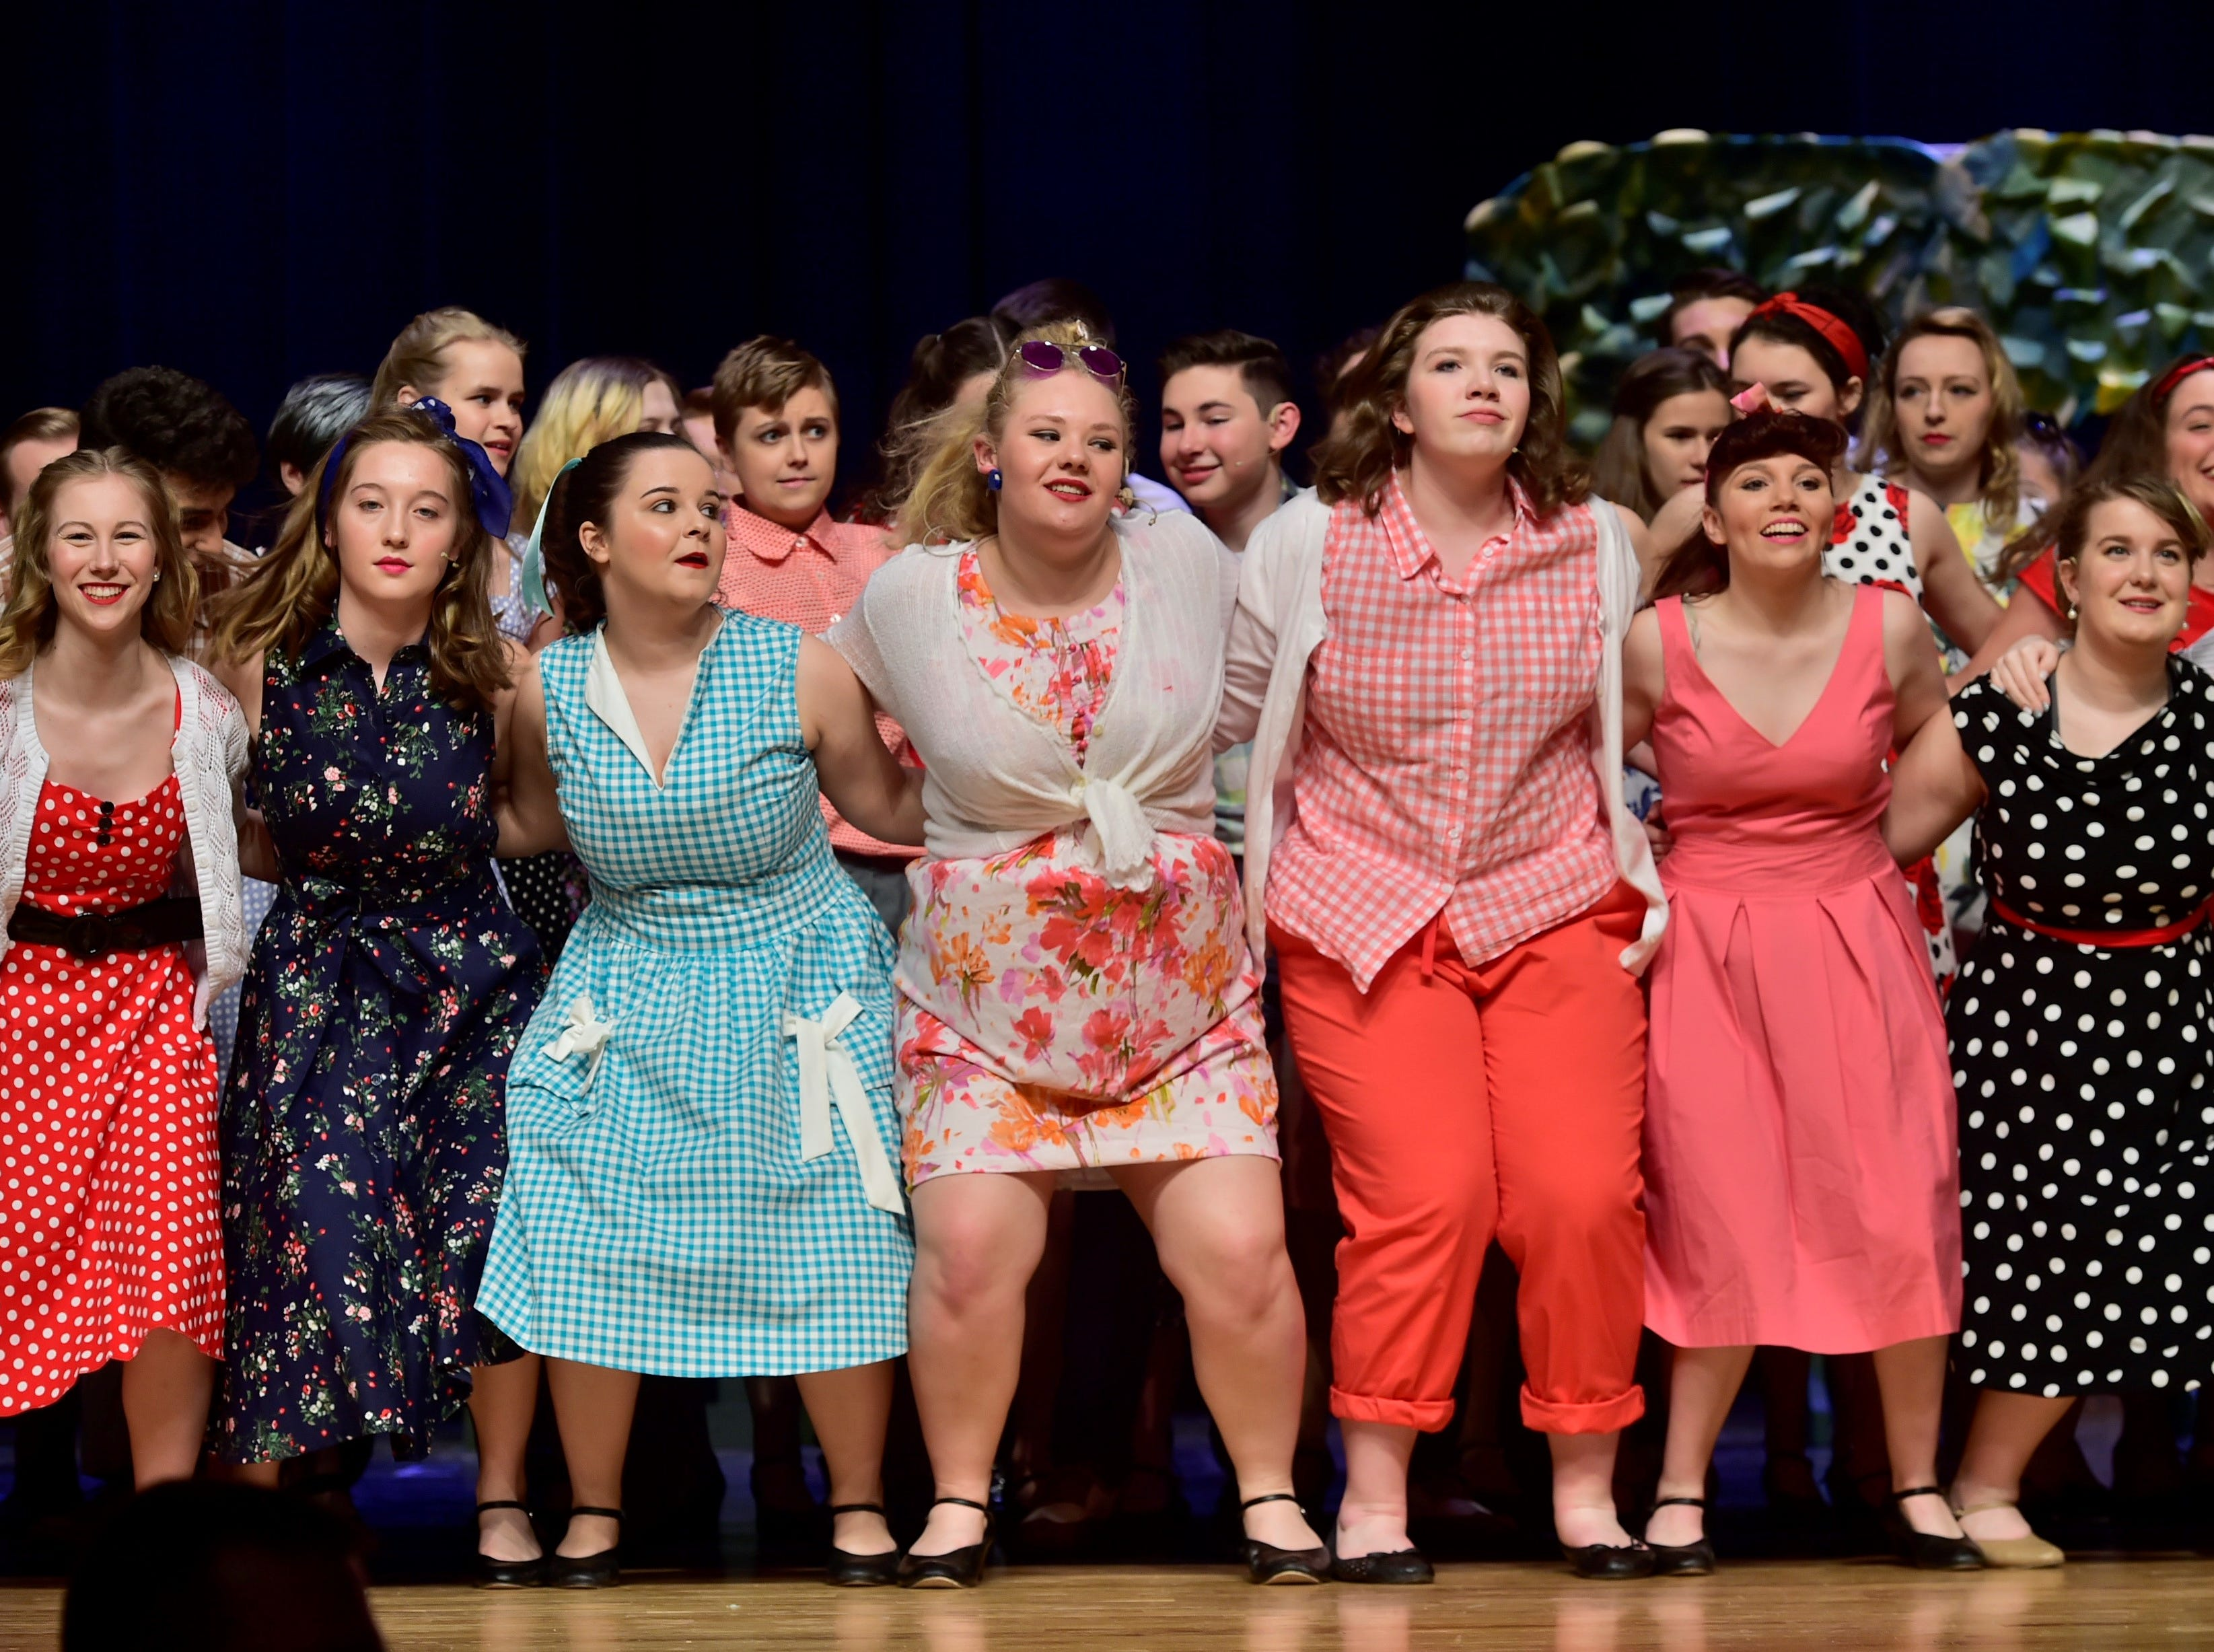 """Cast members rehearse a dance number from """"The Pajama Game,"""" on Sunday, March 10, 2019, at Waynesboro Area Senior High School. The musical, based on the 1953 novel, """"7 1/2 Cents"""" by Richard Bissell, tells the story of a pajama factory where workers are fighting for a raise of 7 1/2 cents. Showtimes for Waynesboro Area School District's All-School Production of """"The Pajama Game"""" are 7 p.m. Friday and Saturday, March 15 and 16, and 2 p.m. Sunday, March 17 in the high school auditorium. For choose-your-seat tickets, $10 for adults and $6 for children under 12, go to https://washsmusic.ticketleap.com/the-pajama-game/. General admission tickets will also be sold at the door."""